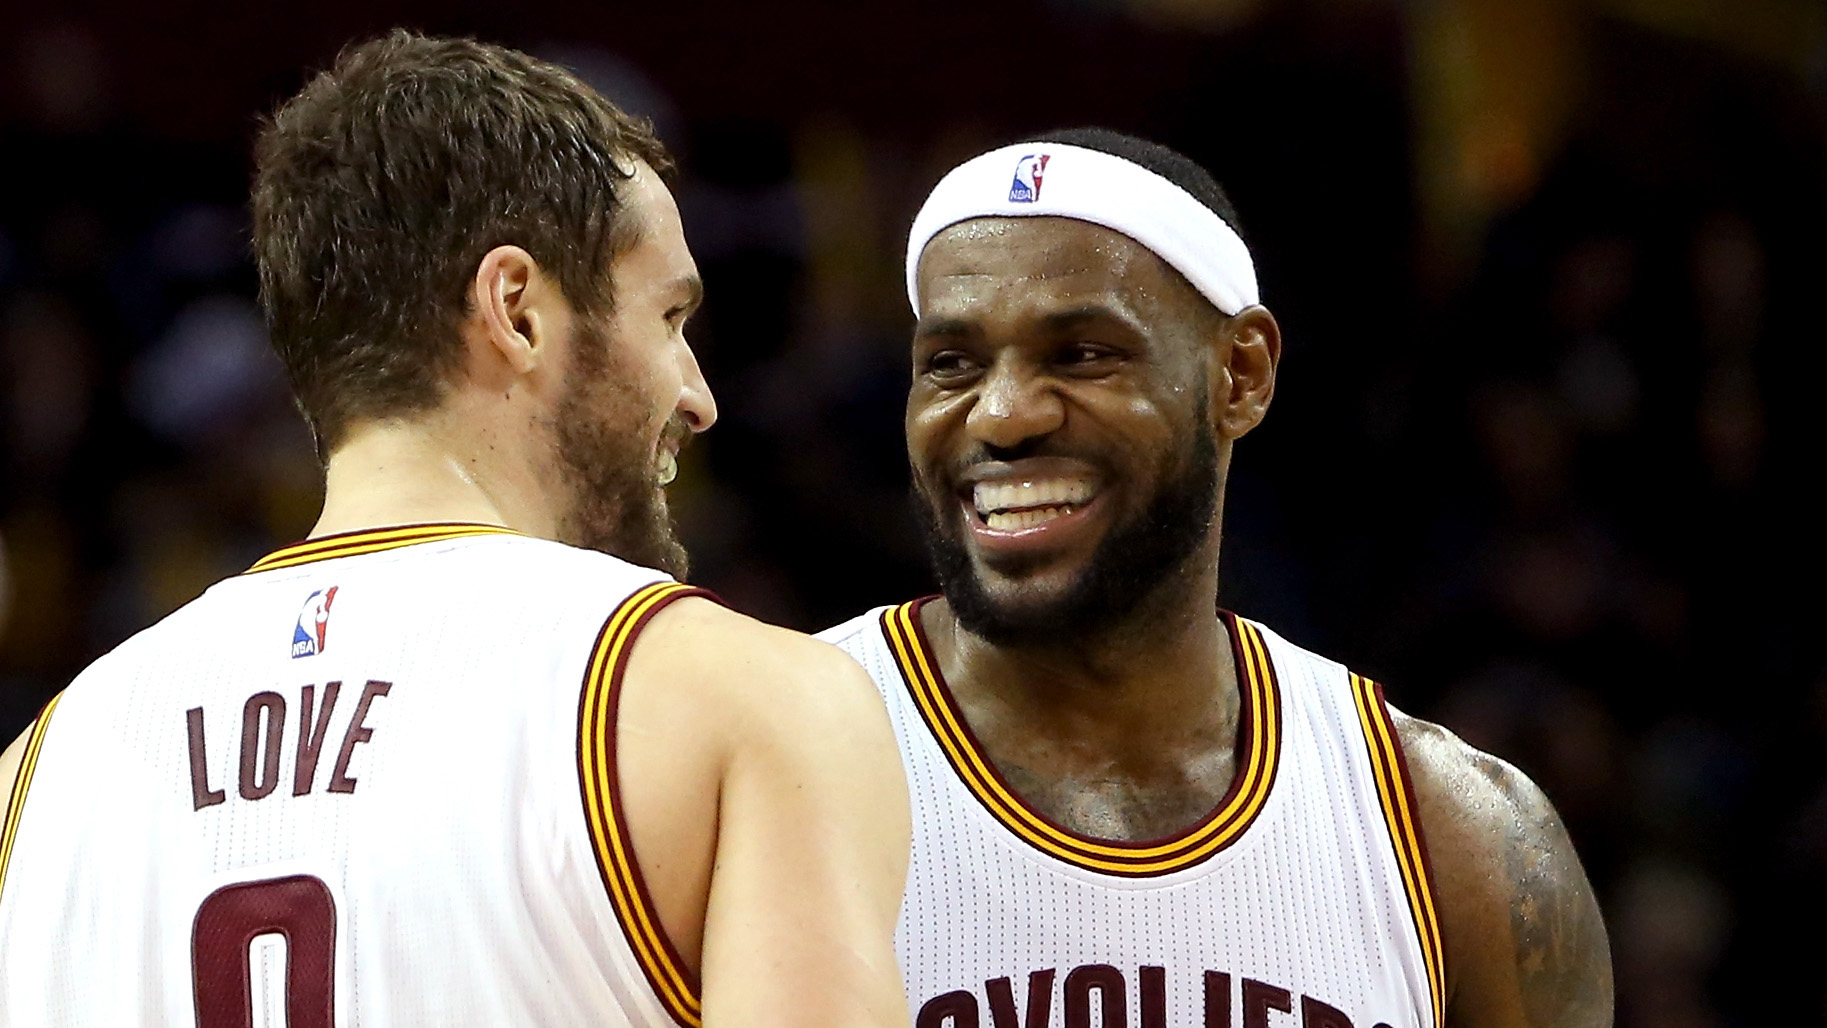 d0f4f5c8918 LeBron roasted Kevin Love for his  weak sauce  shoes